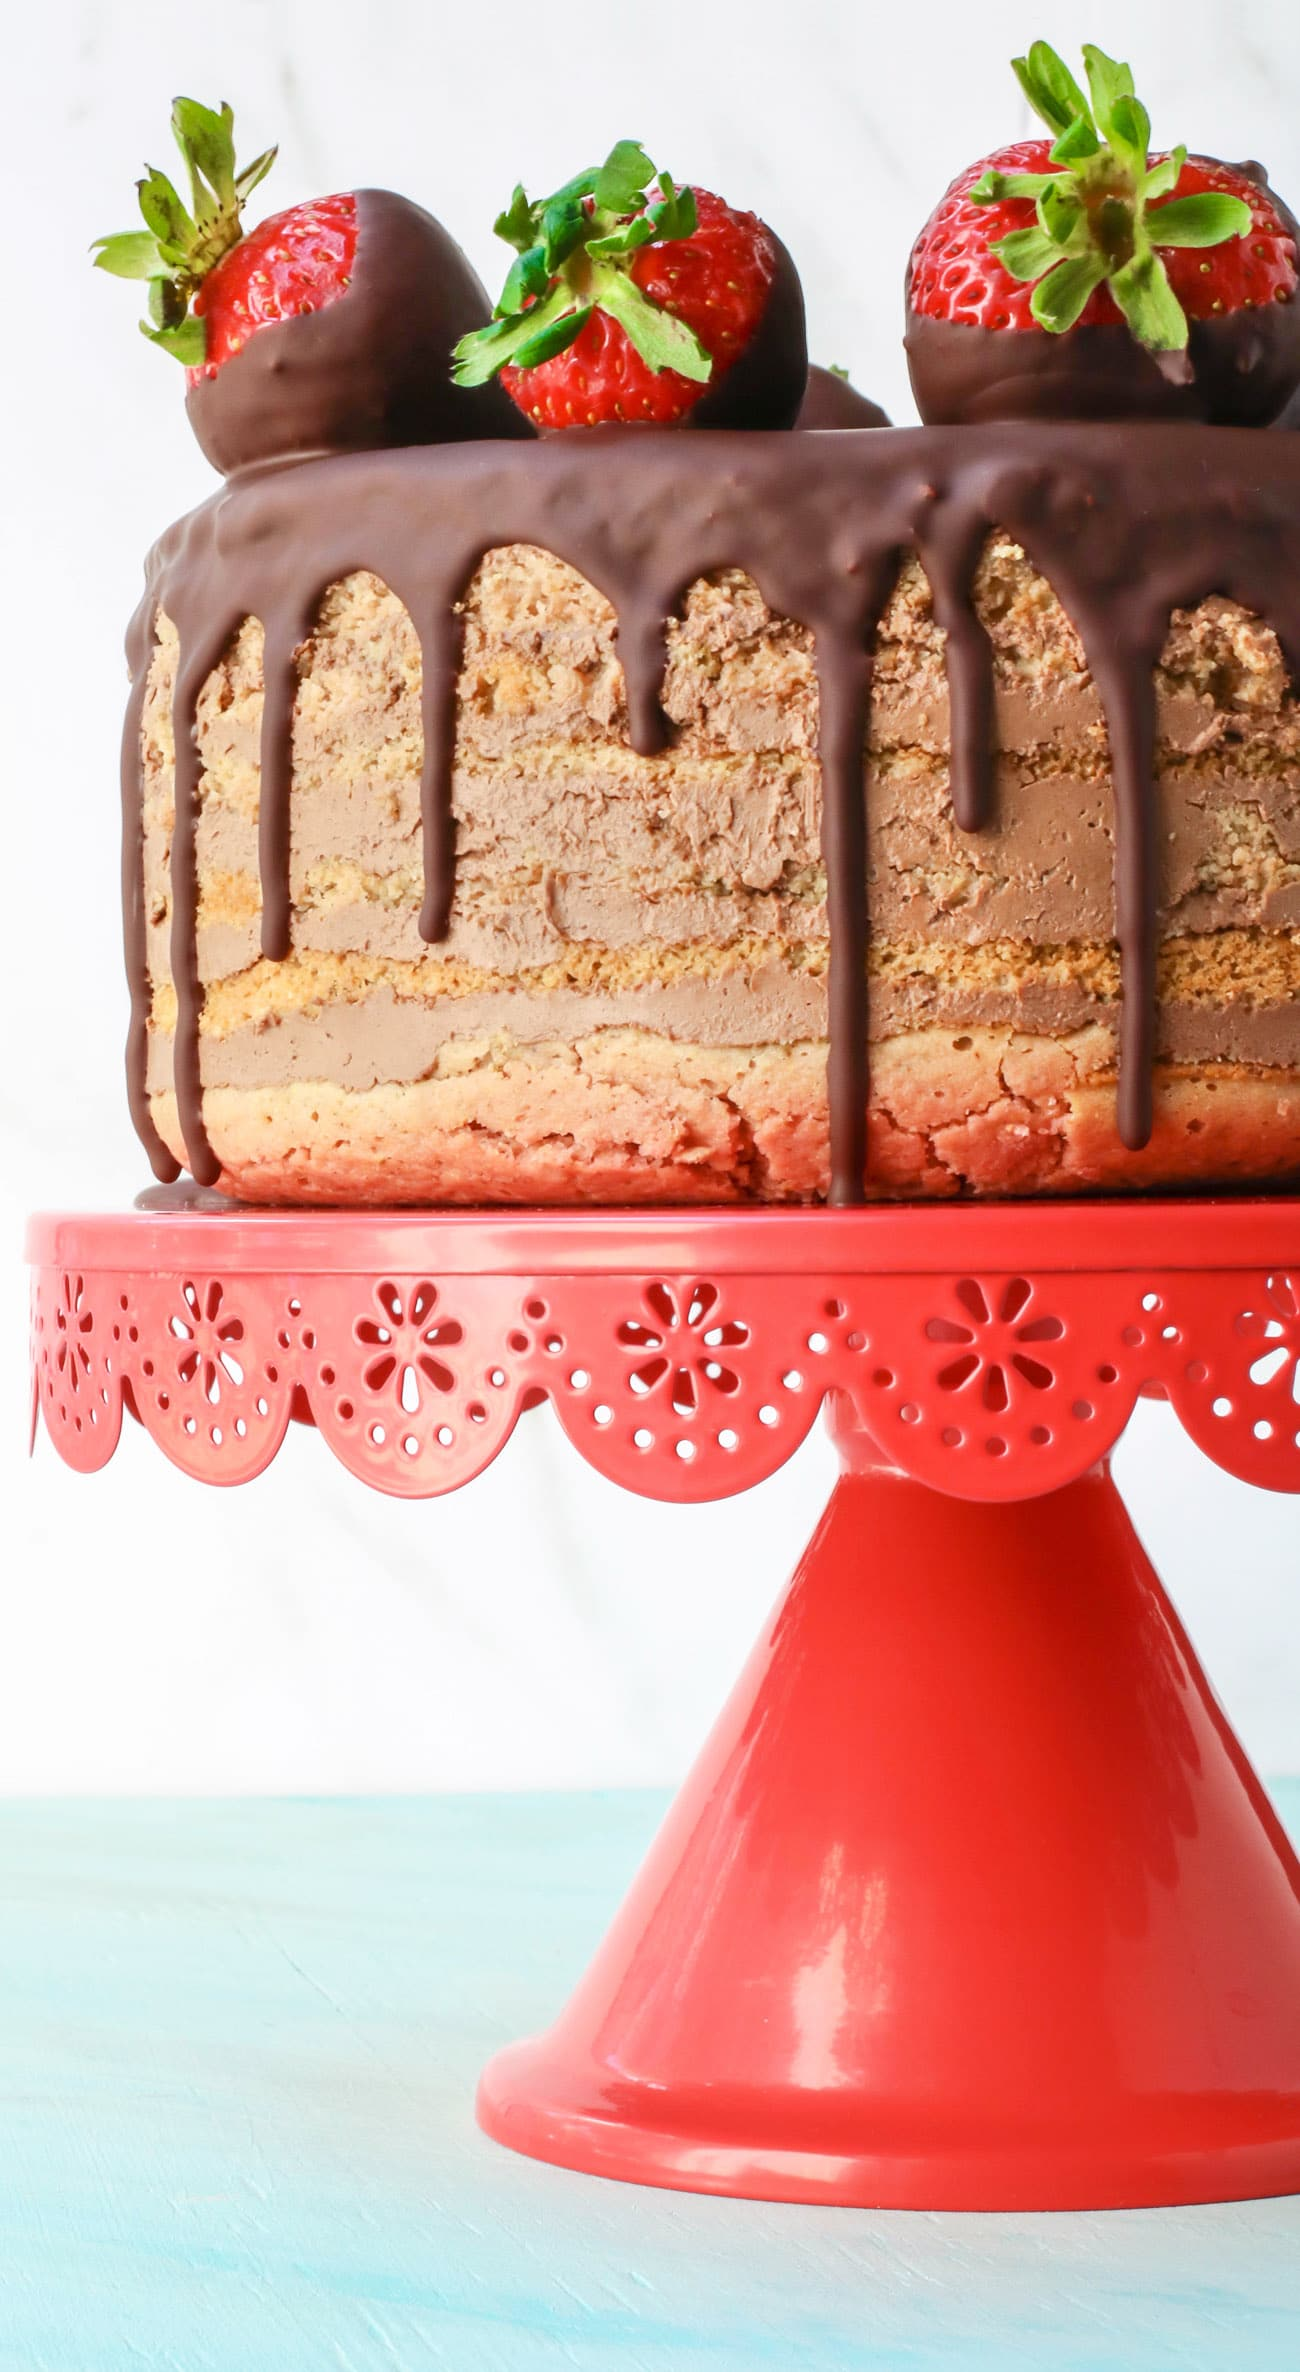 Seven-Layer Chocolate-Covered Strawberry Cake (sugar free, gluten free)